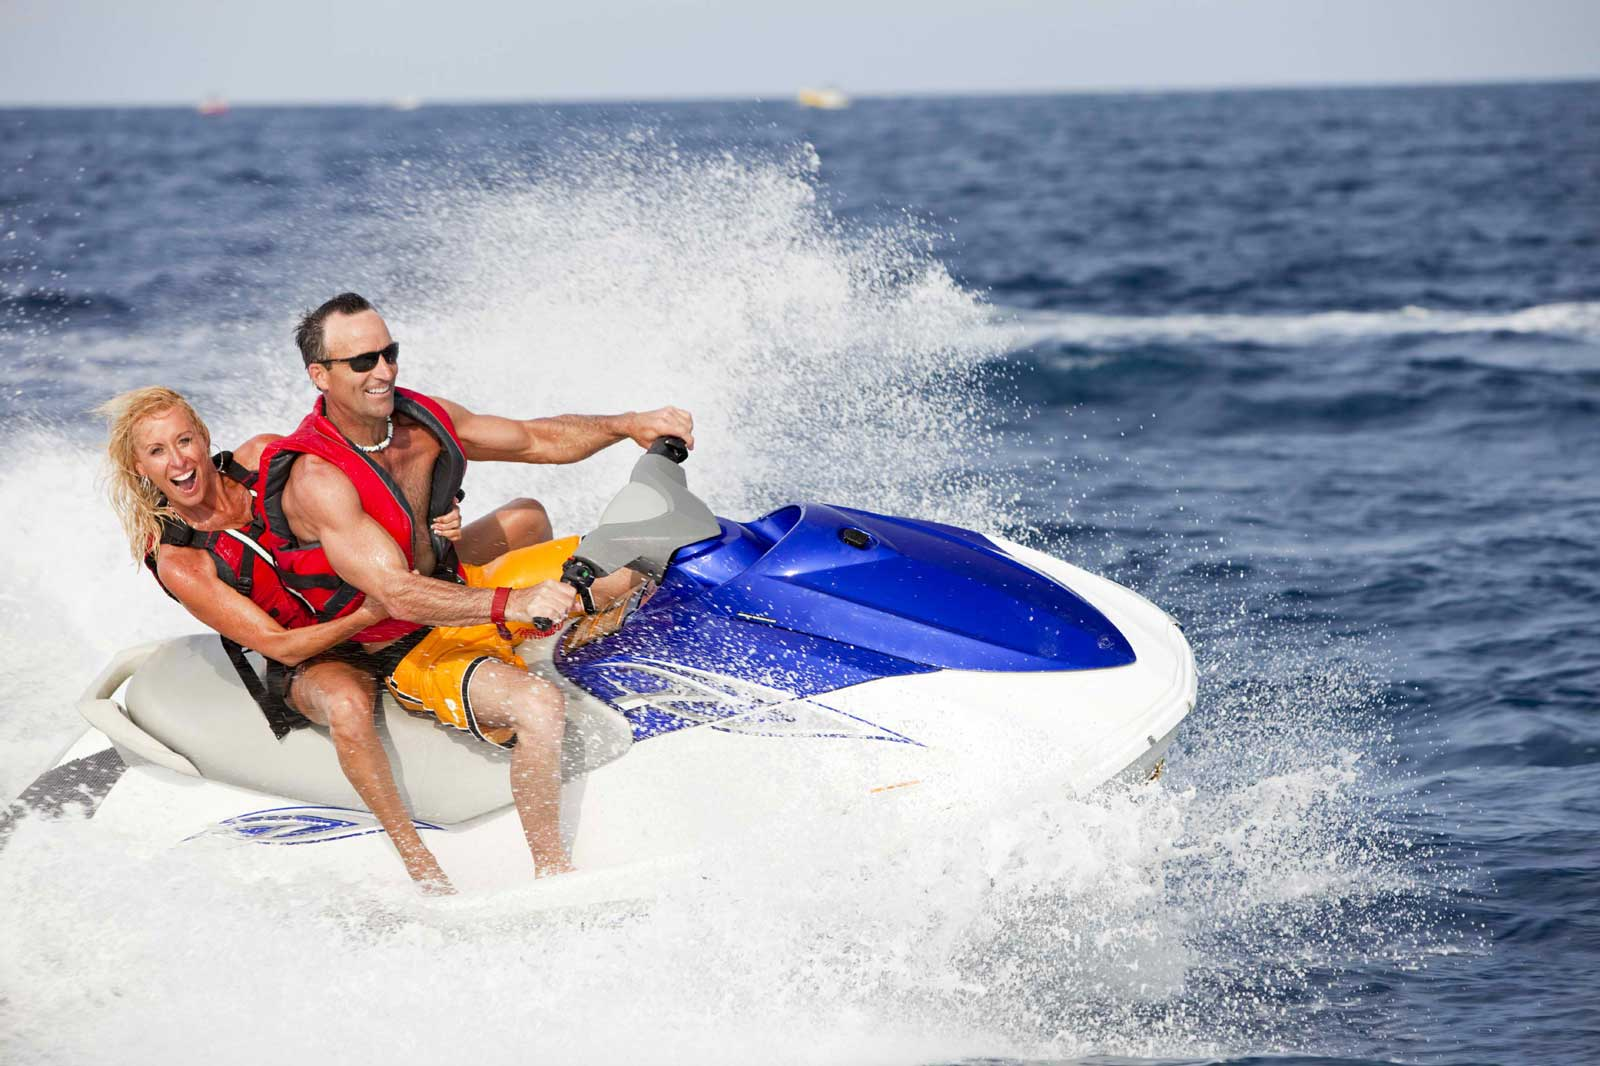 Miami Jet Ski Als Authority